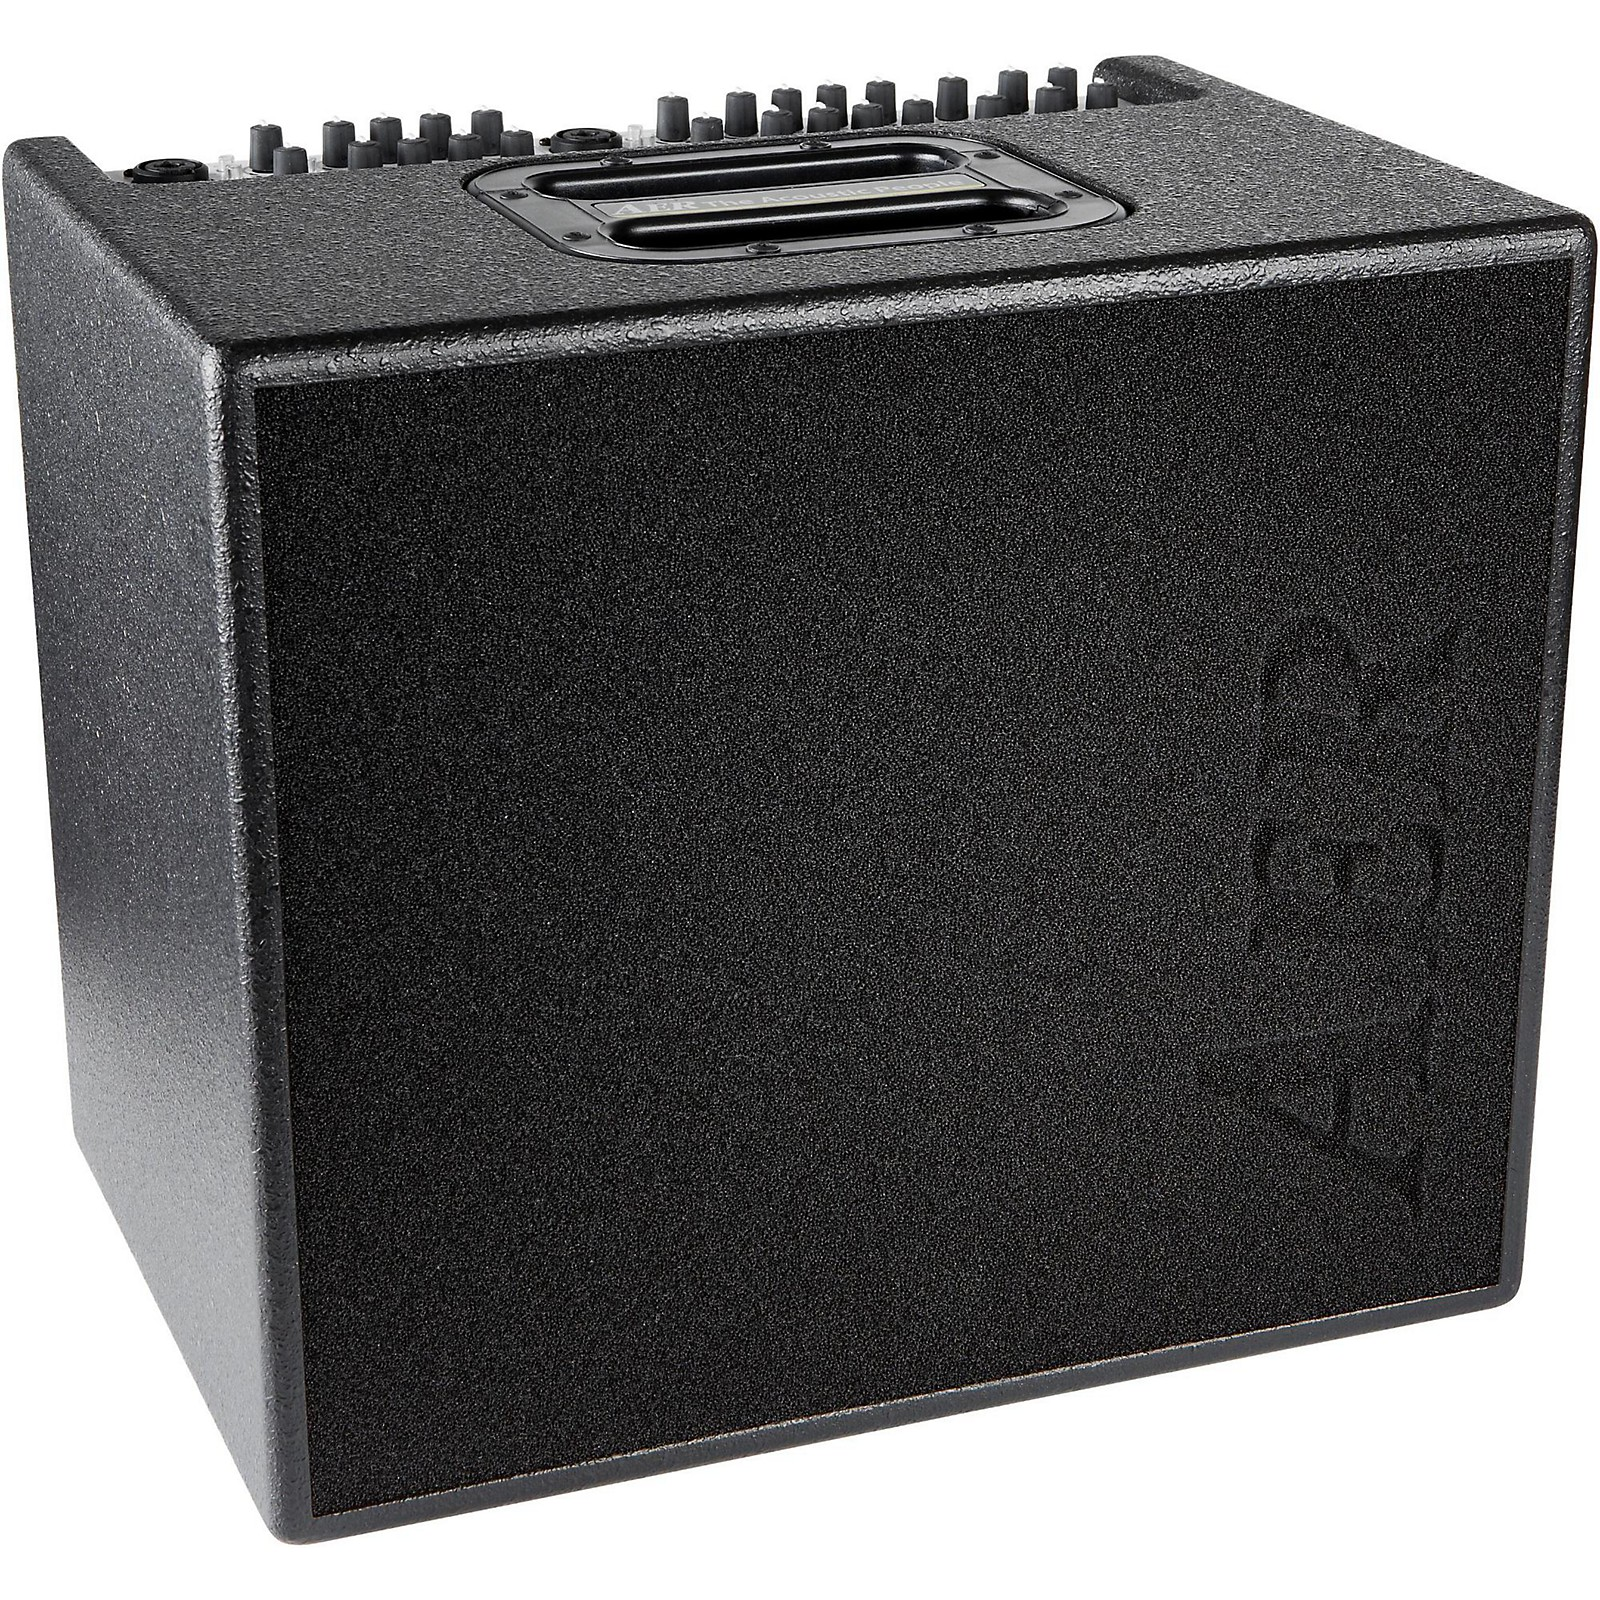 Open Box AER Domino 3 2x8 200W Stereo Acoustic Guitar Combo Amp